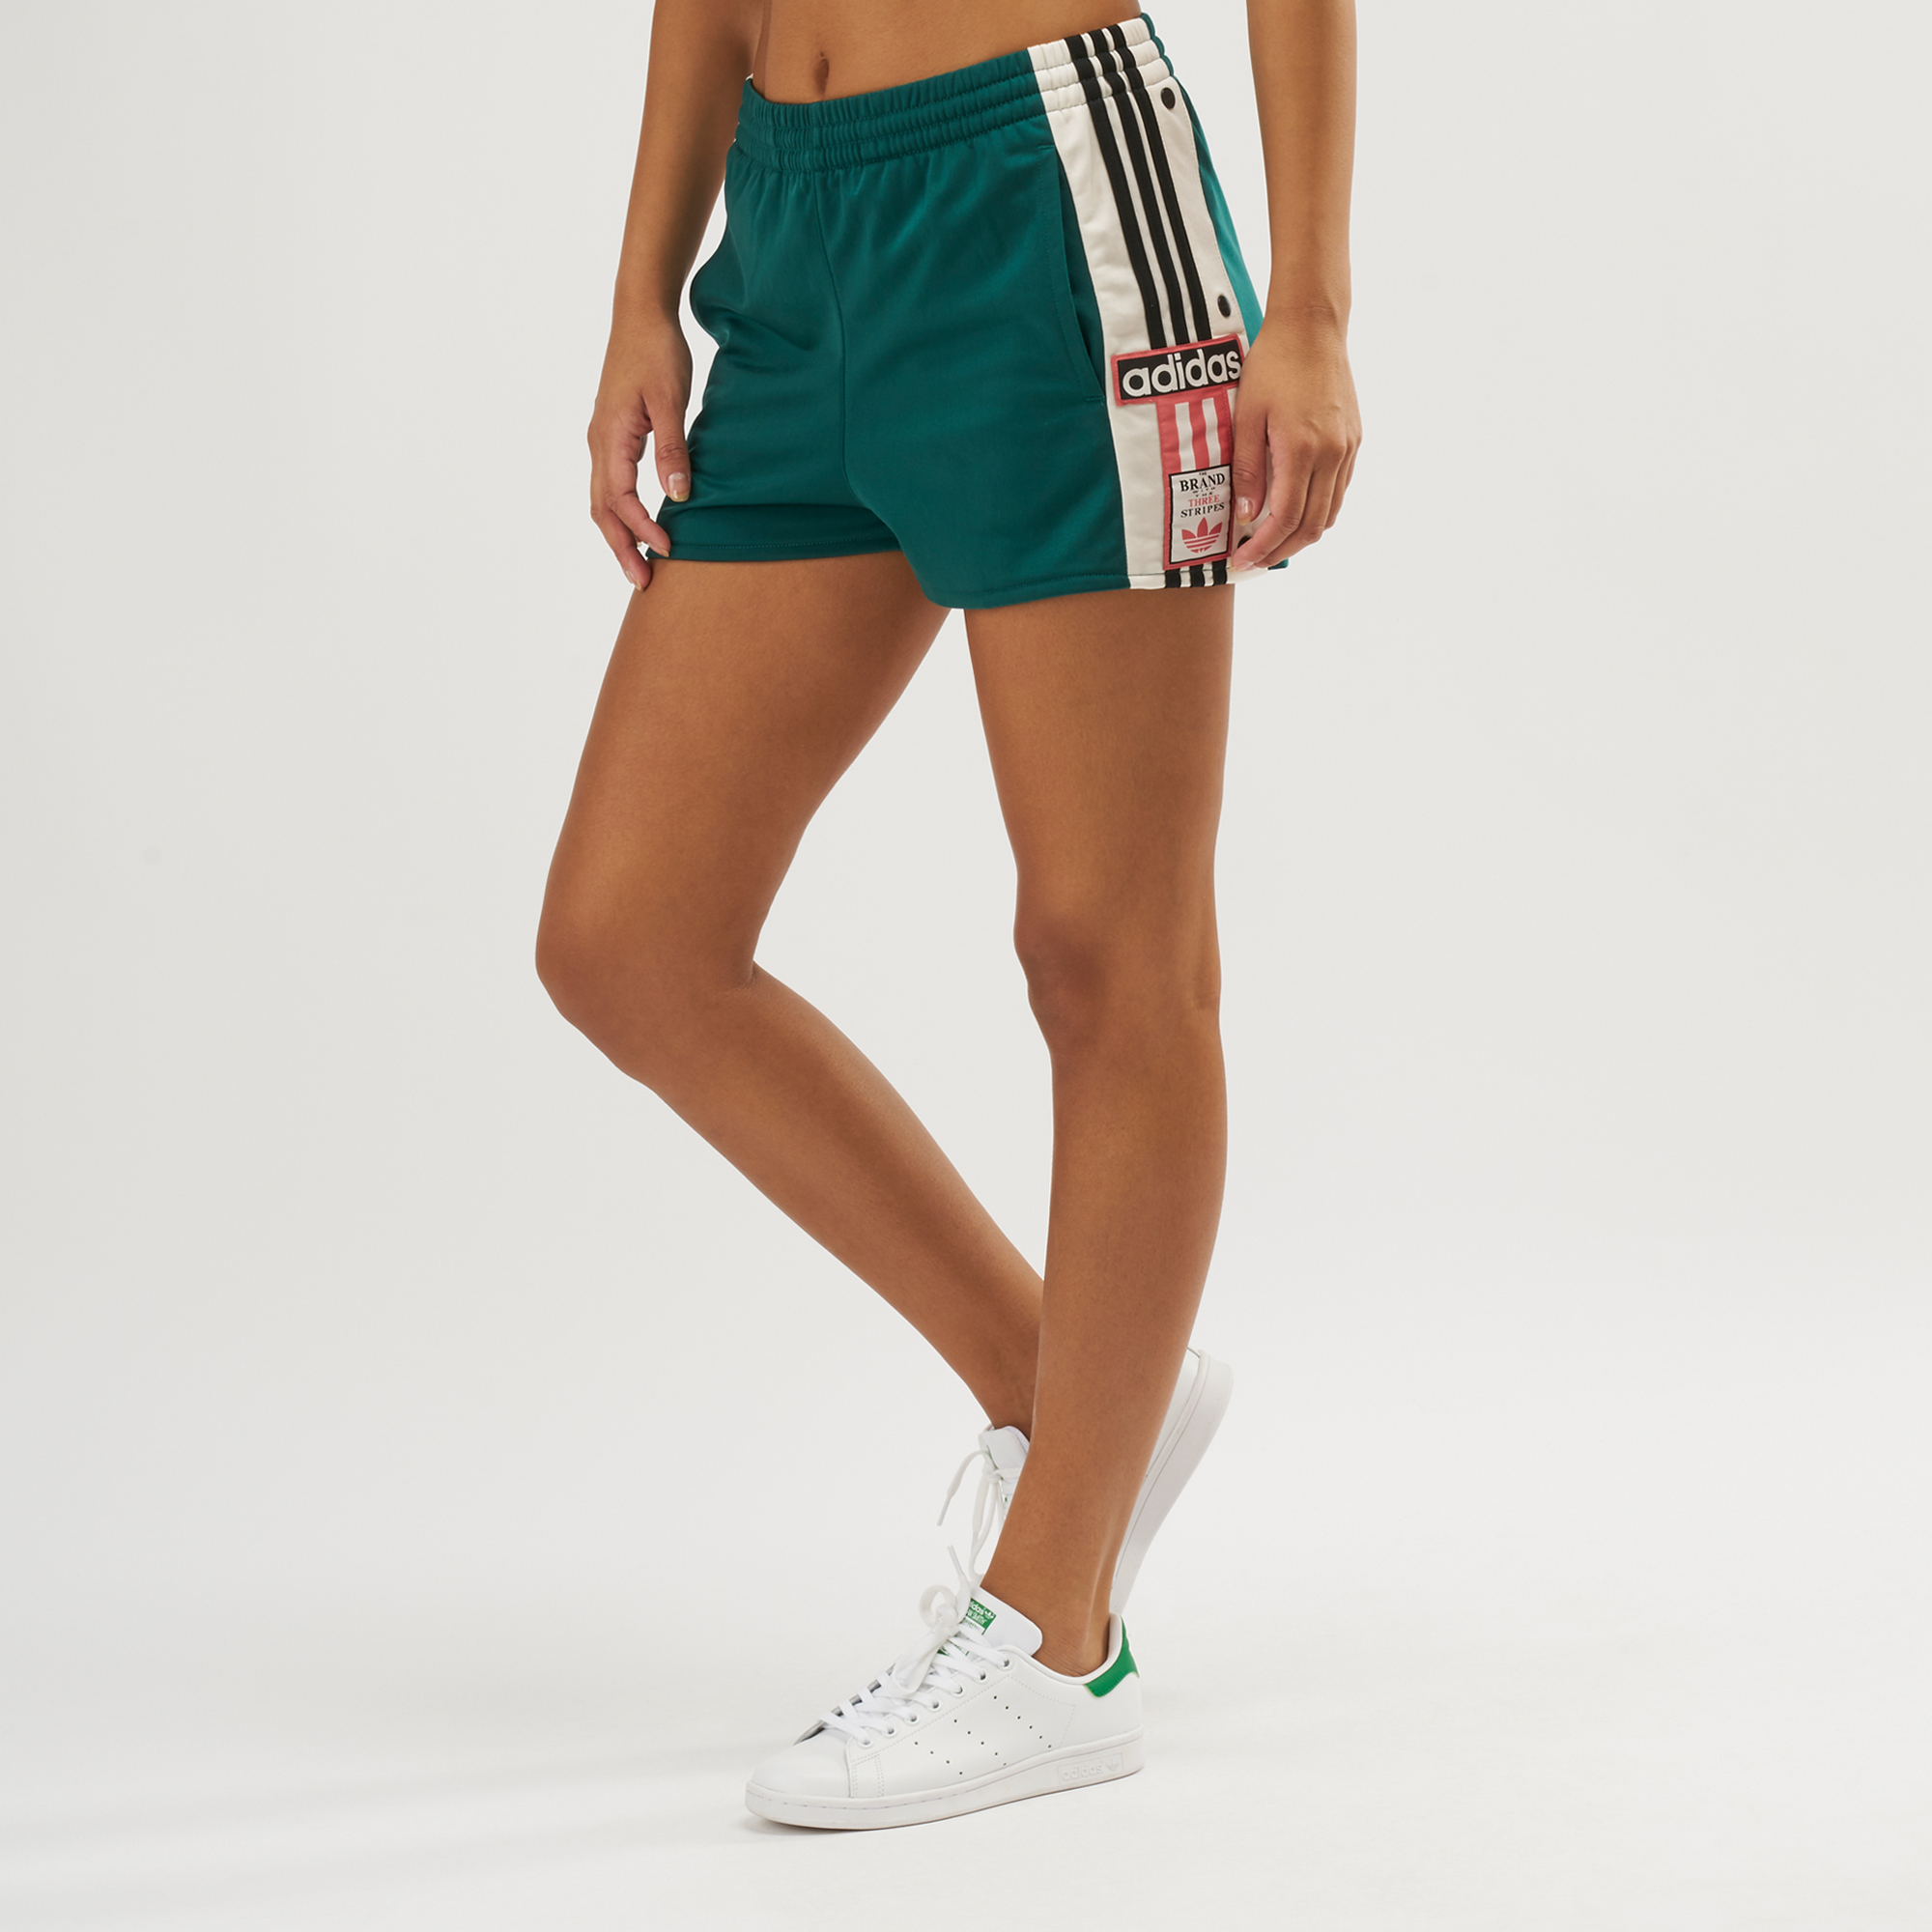 adidas Originals Adibreak Short | Shorts | Clothing ...